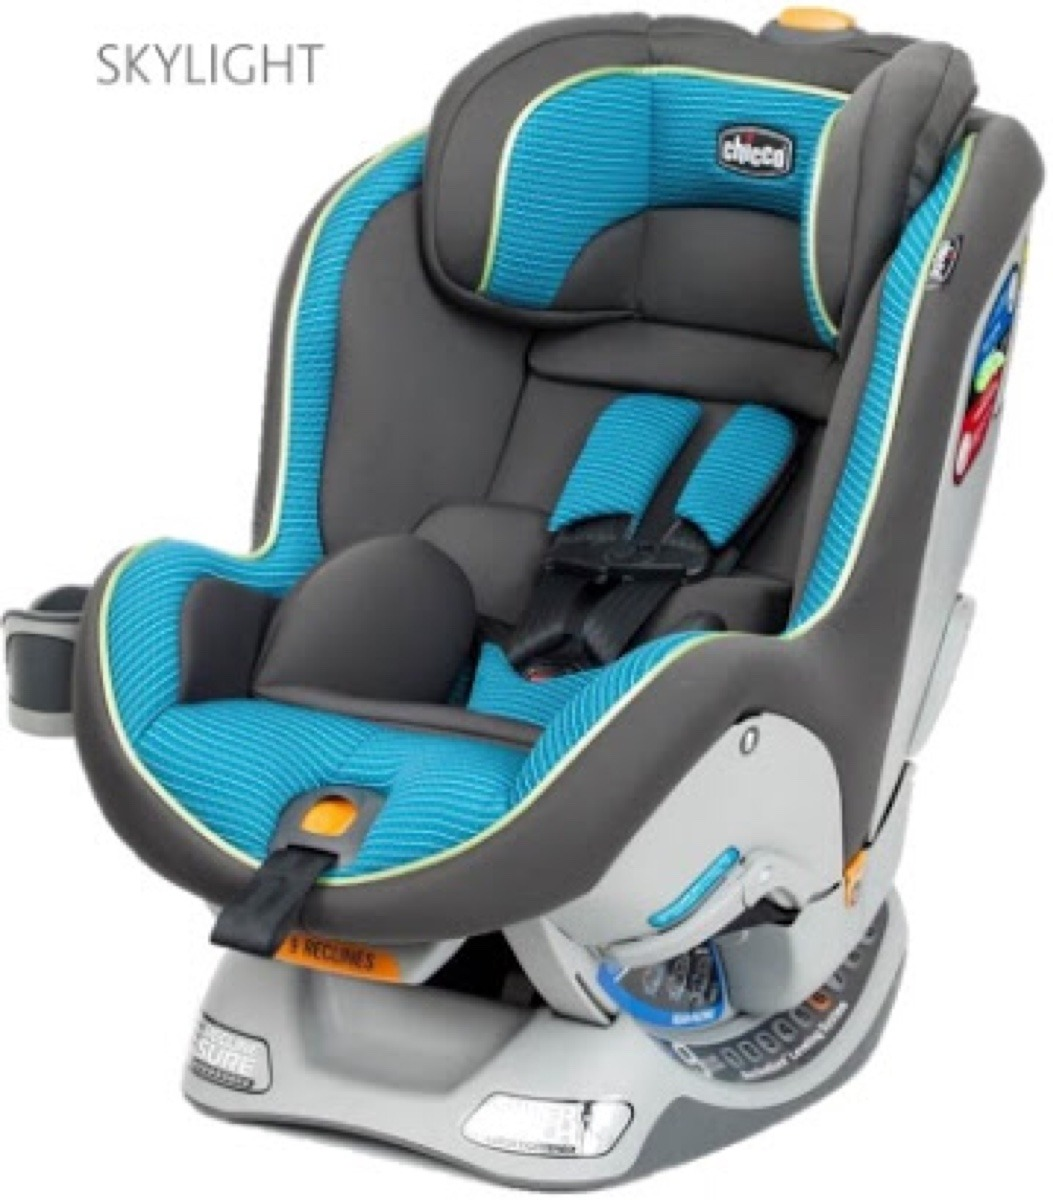 Asiento para auto de bebe portabebe reclinable chicco fit for Asientos para bebes para autos